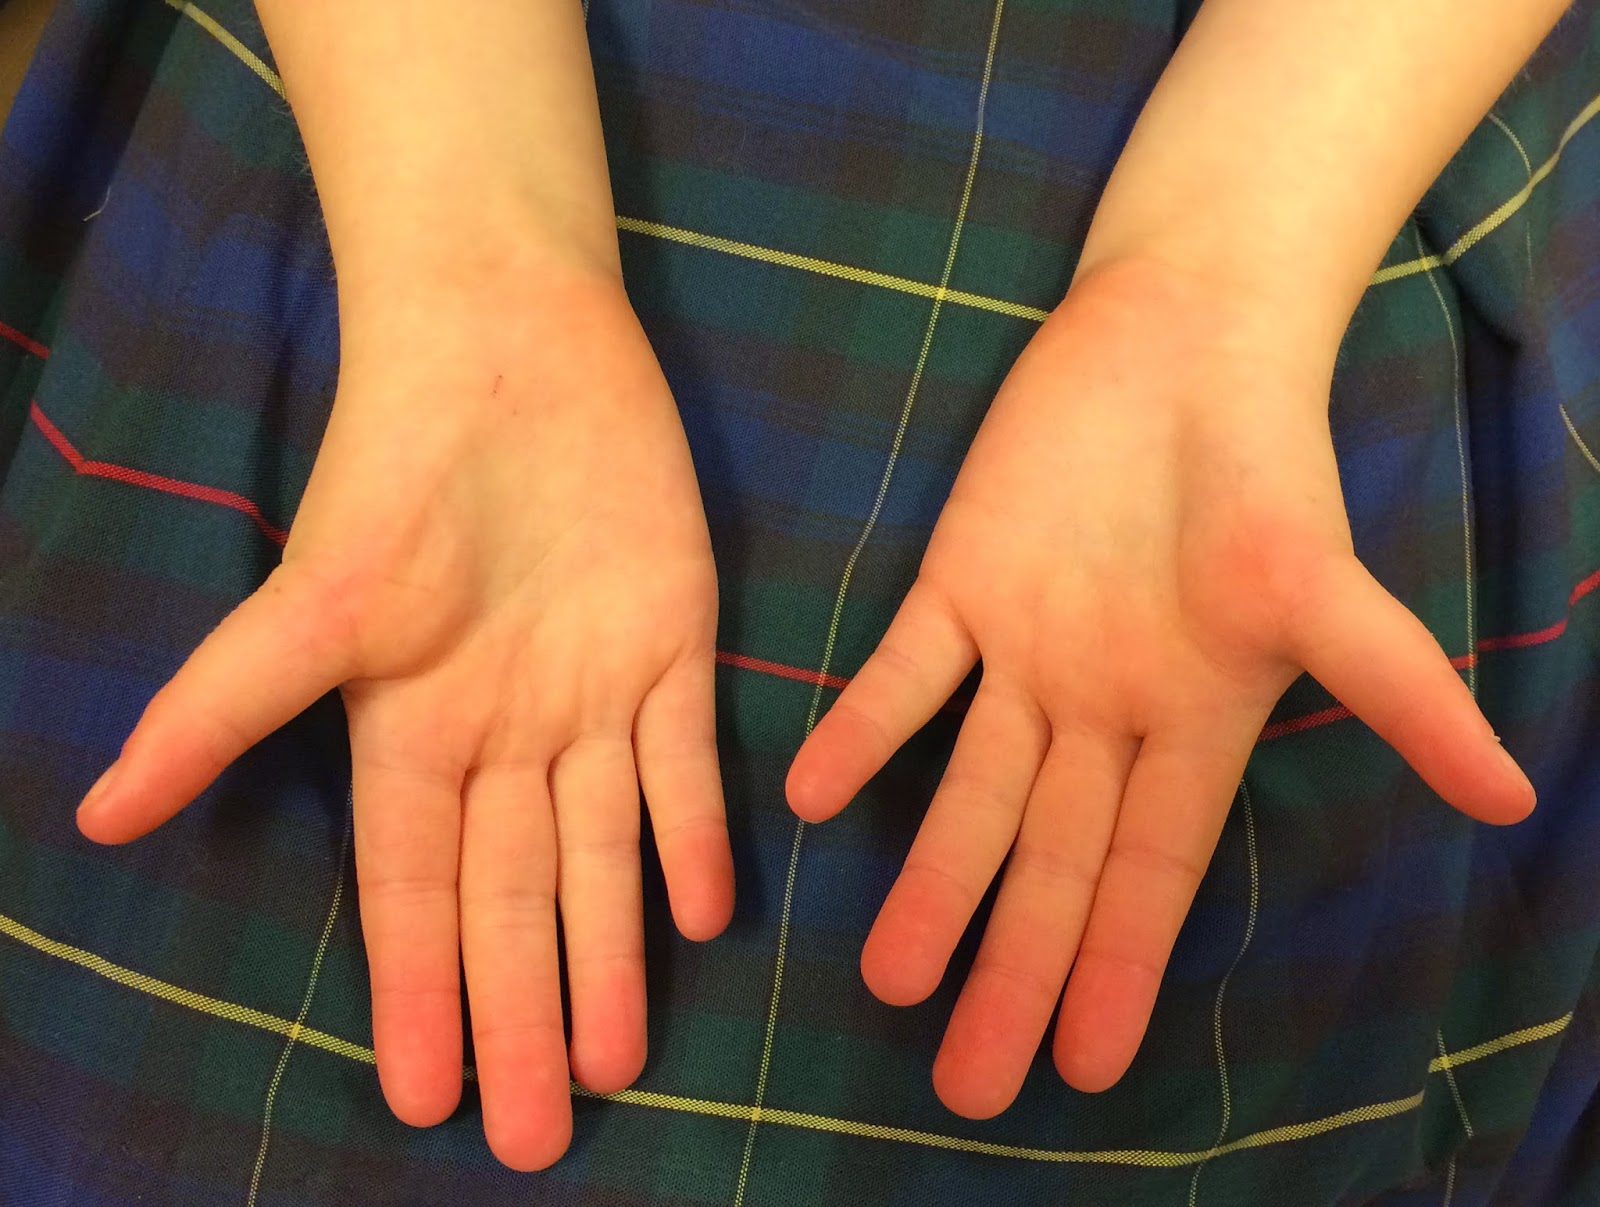 Underdeveloped Thumbs Congenital Hand And Arm Differences